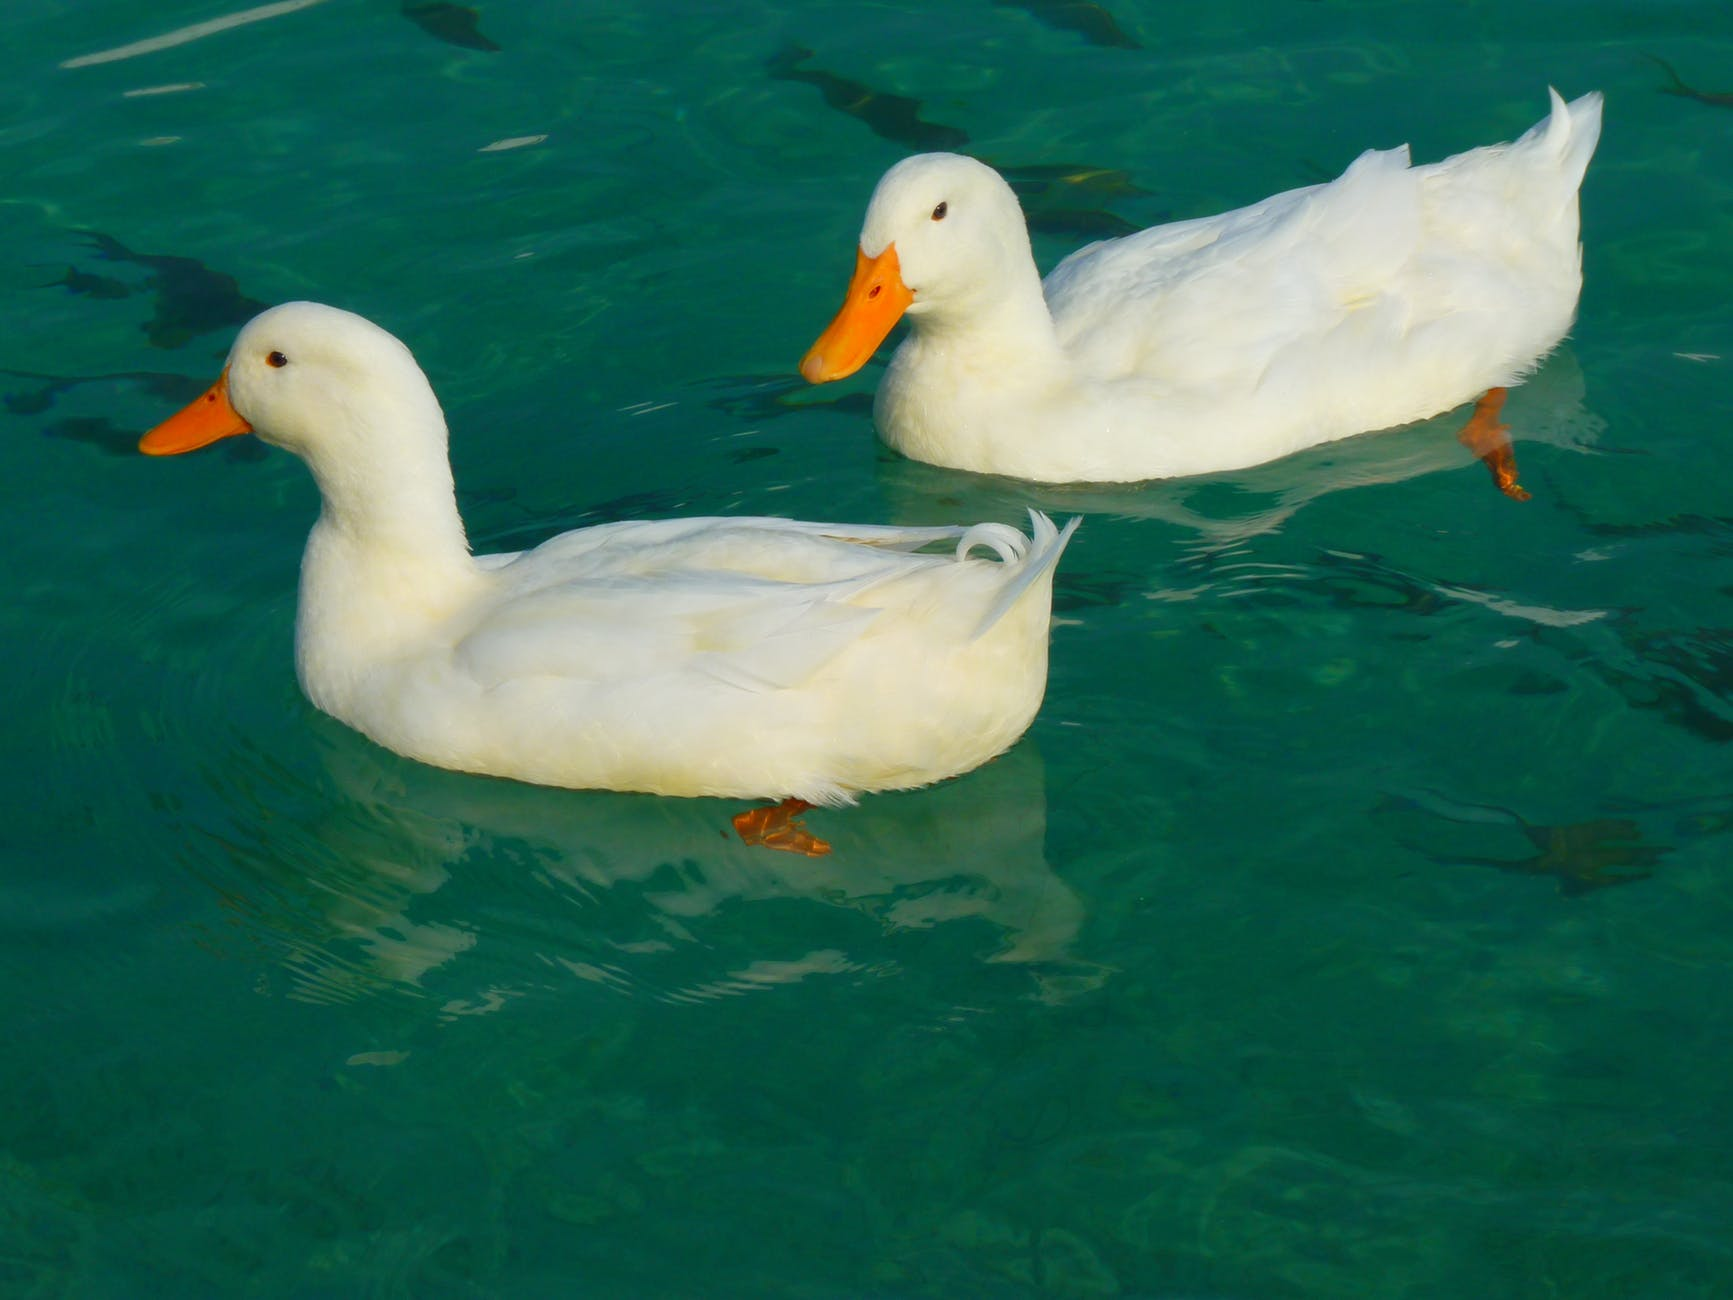 duck-white-ducks-animal-86731.jpeg